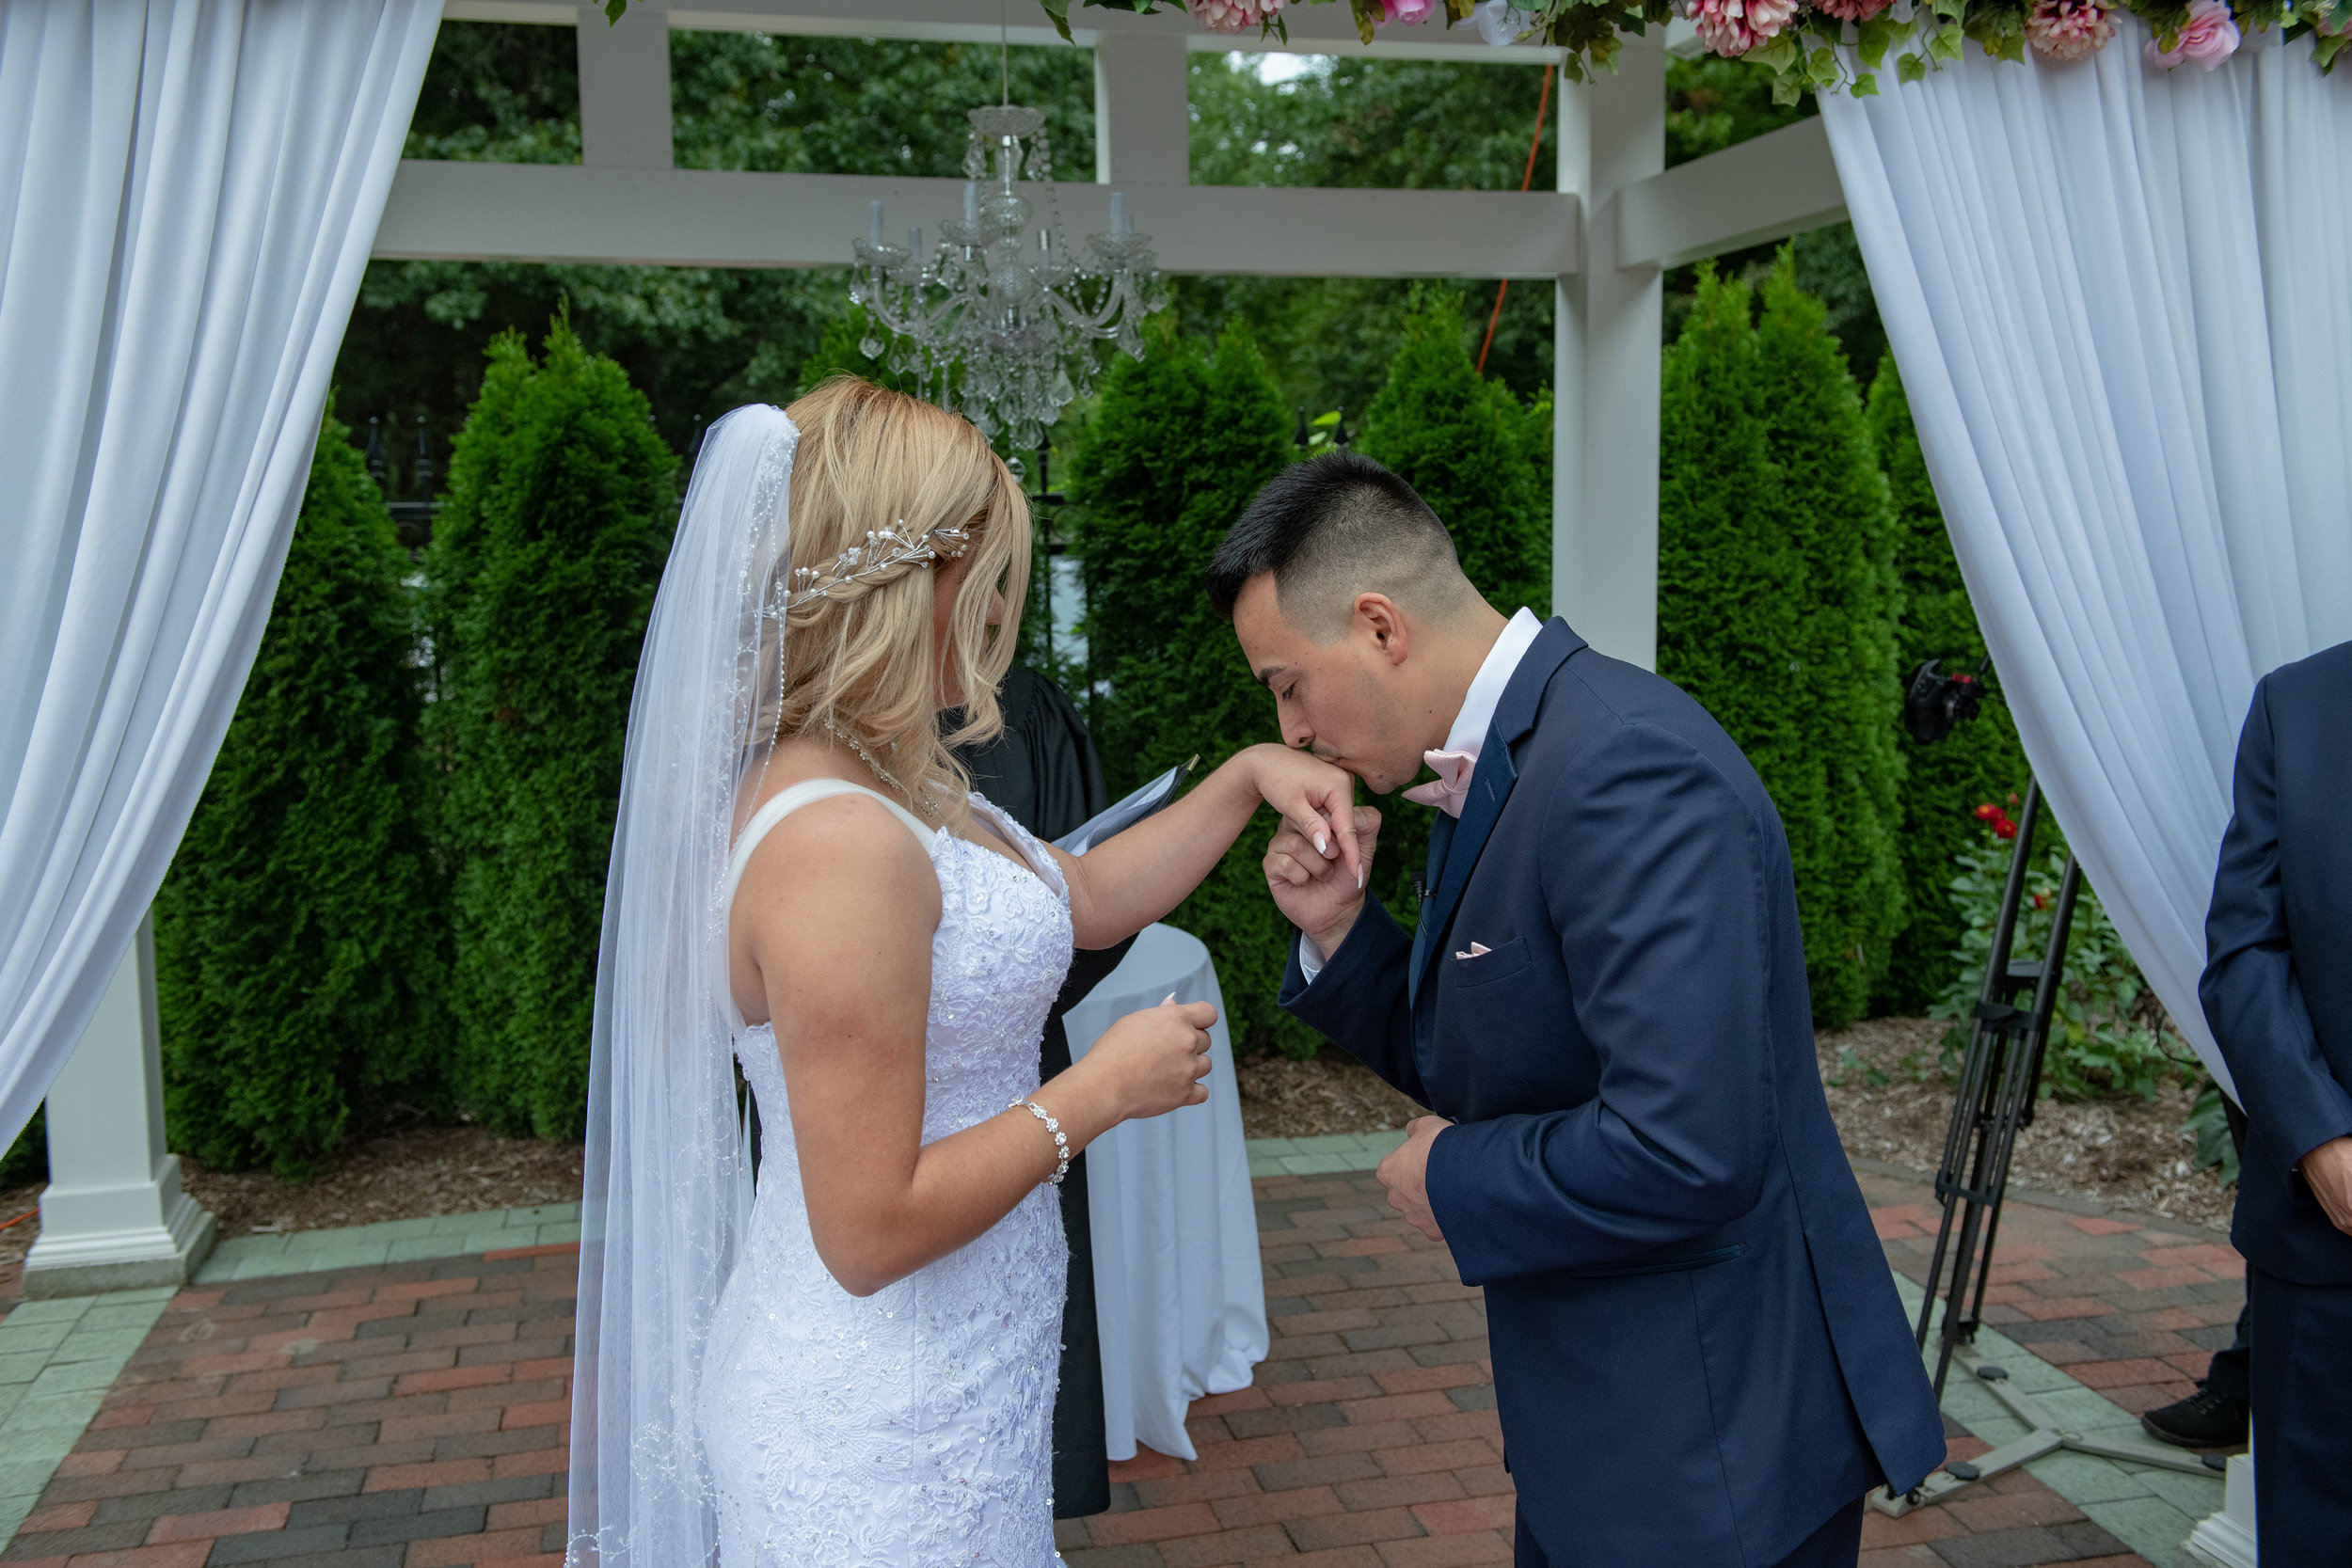 Freddy is so happy to see his bride Lily. - It was an emotional walk up the aisle for both of them. Very touching.